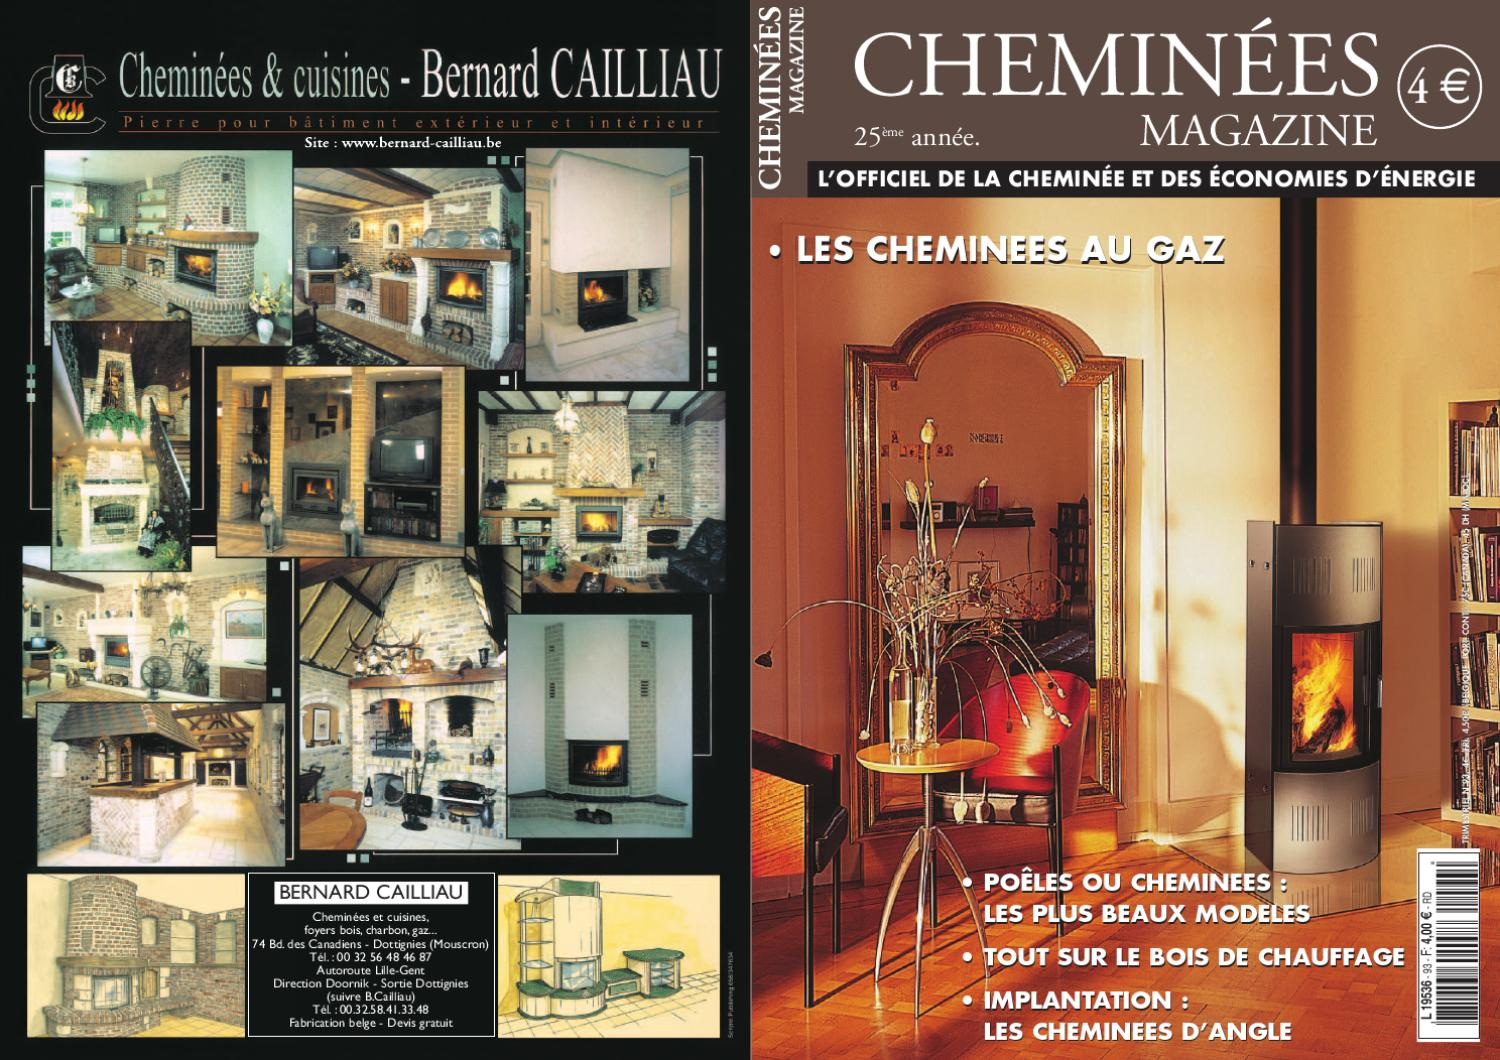 Atelier Ceramique Regnier Cheminees Book Magazine By Saure Saby Issuu